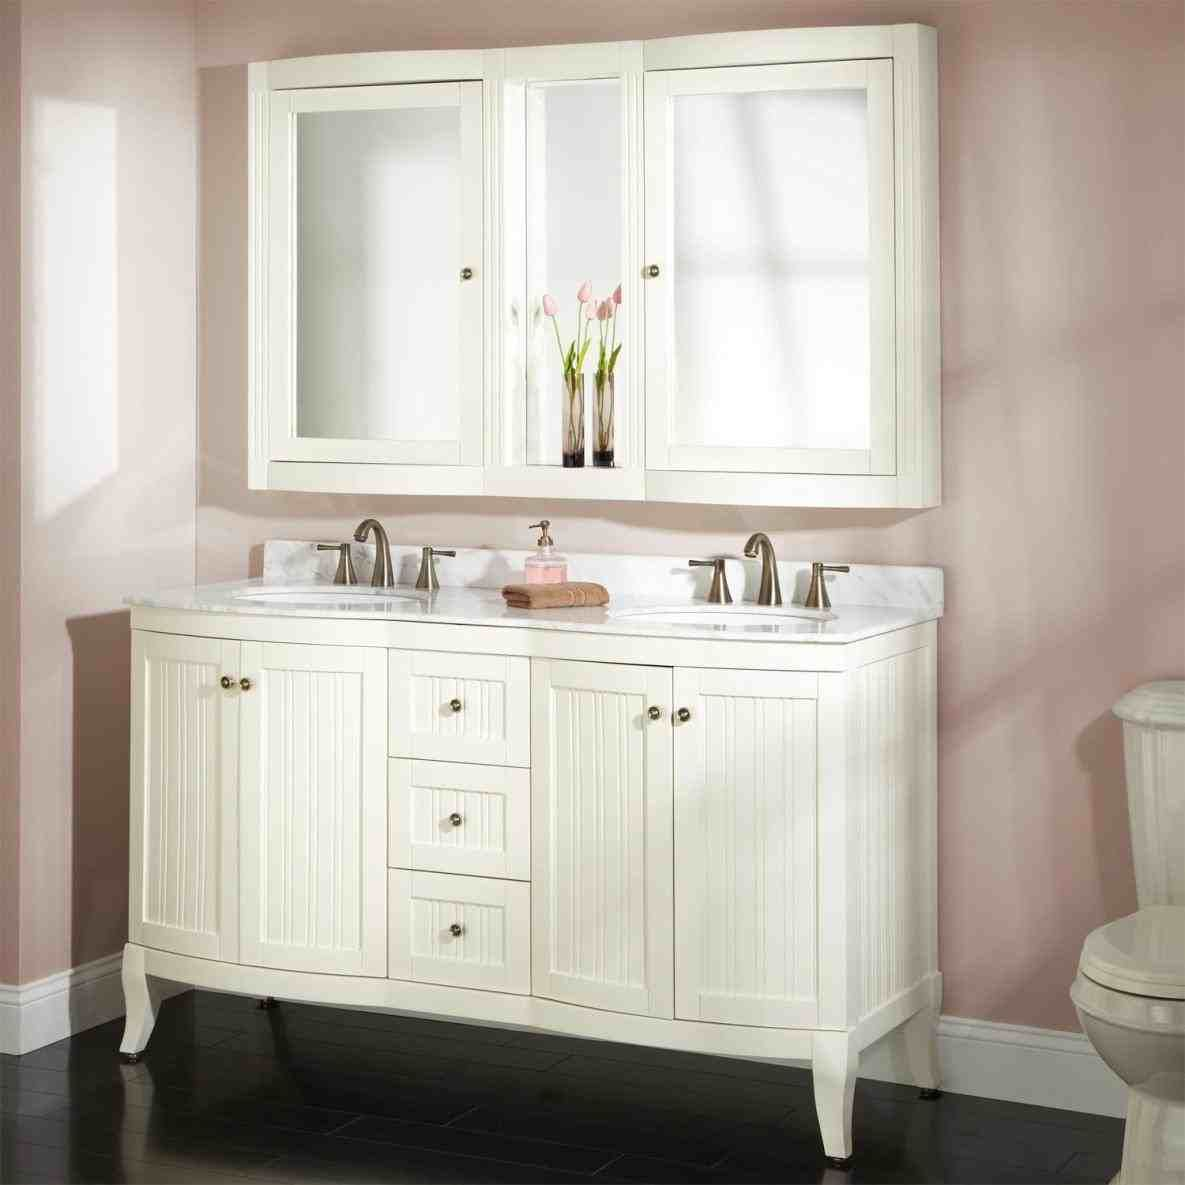 New Post where to buy bathroom cabinets visit bathroomremodelideass ...